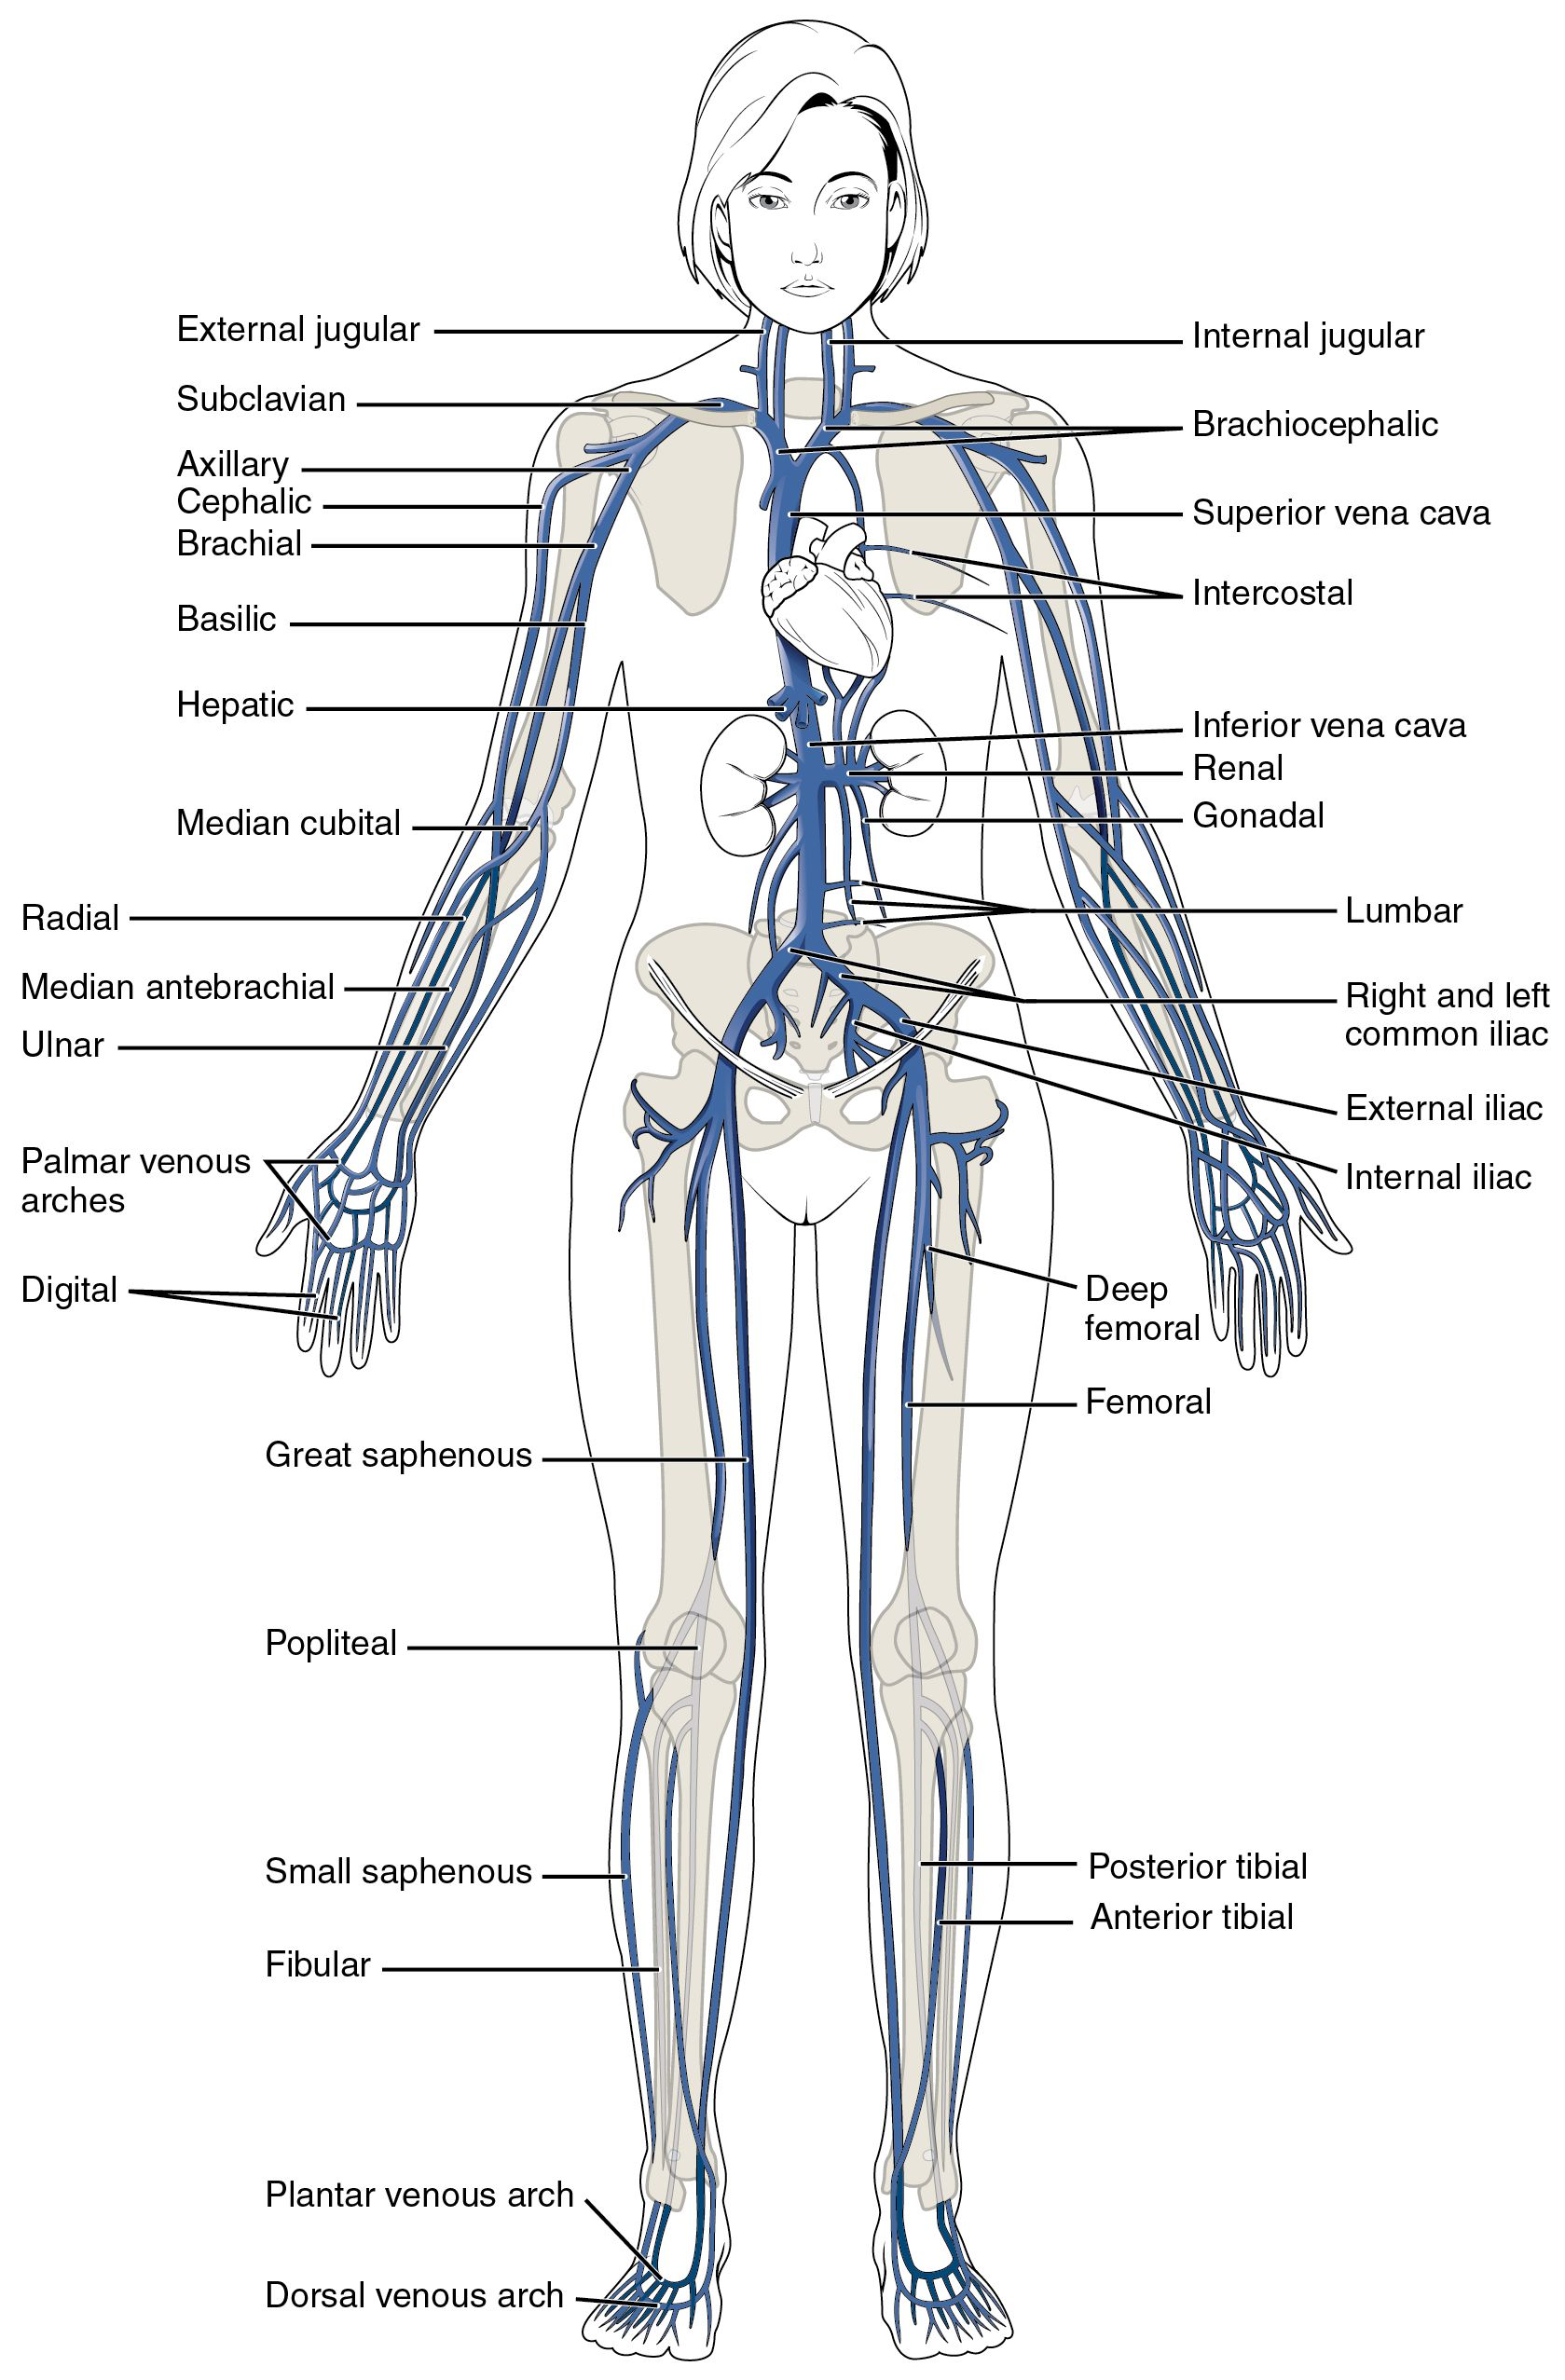 Human Anatomy Diagram Of Veins Auto Electrical Wiring Diagram